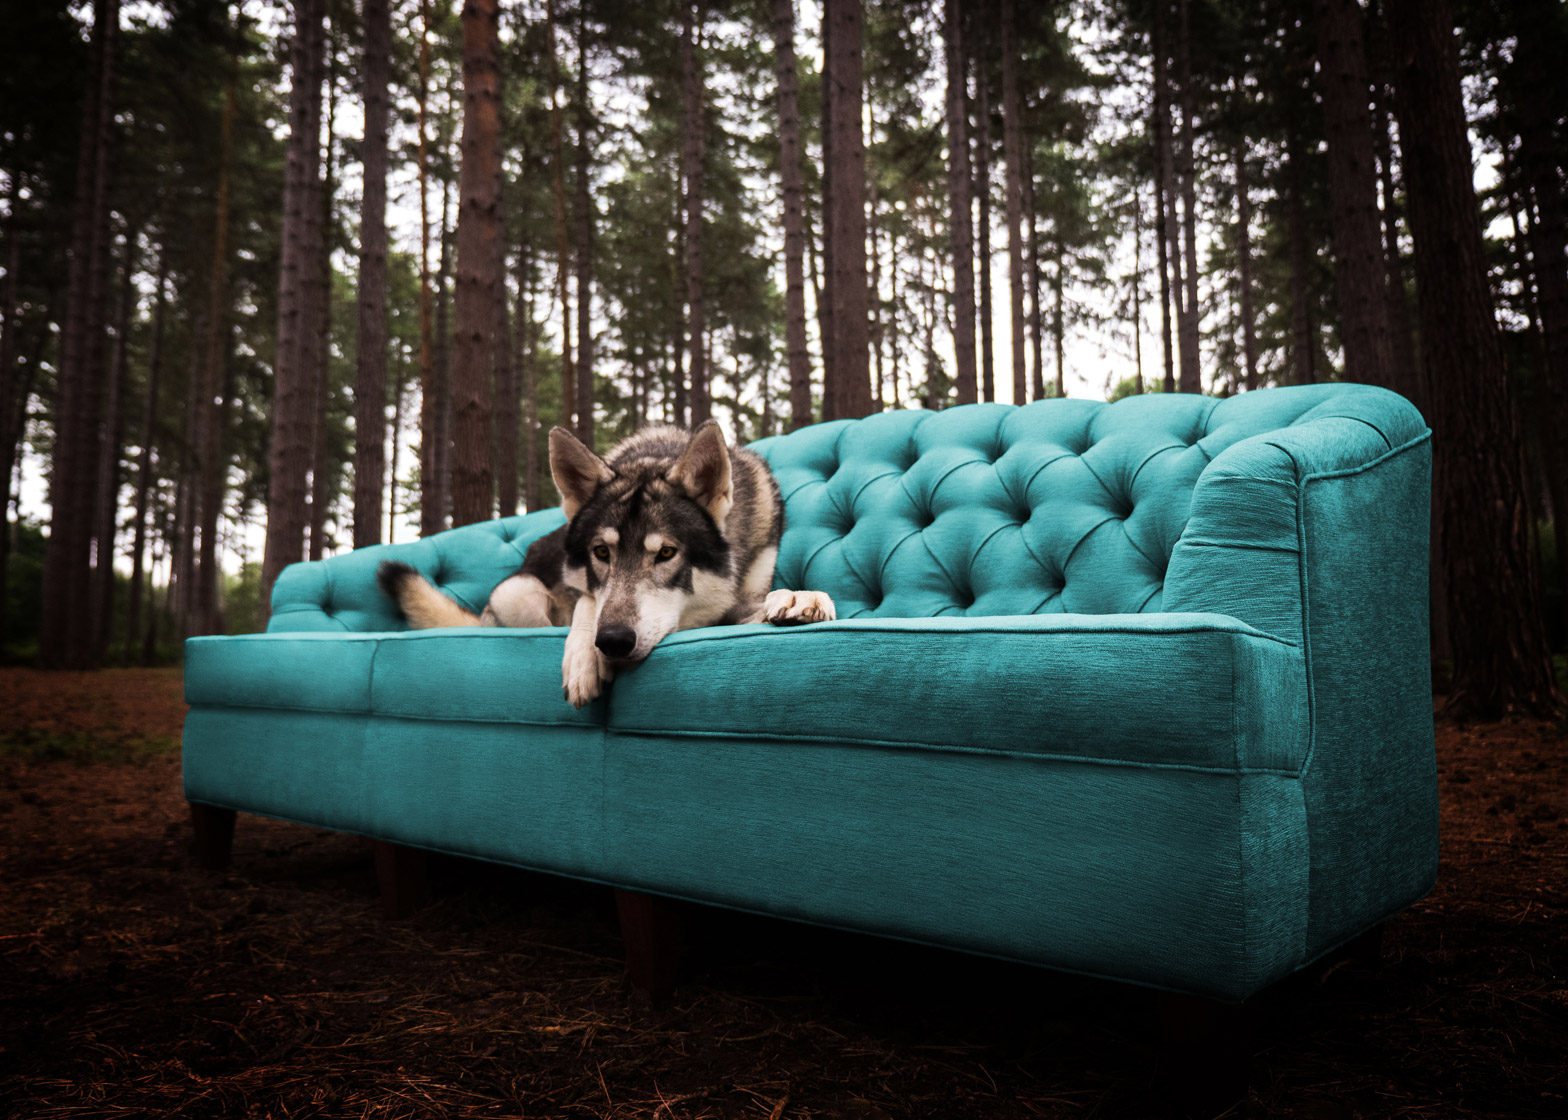 Luxury outdoor furniture by Coco Wolf